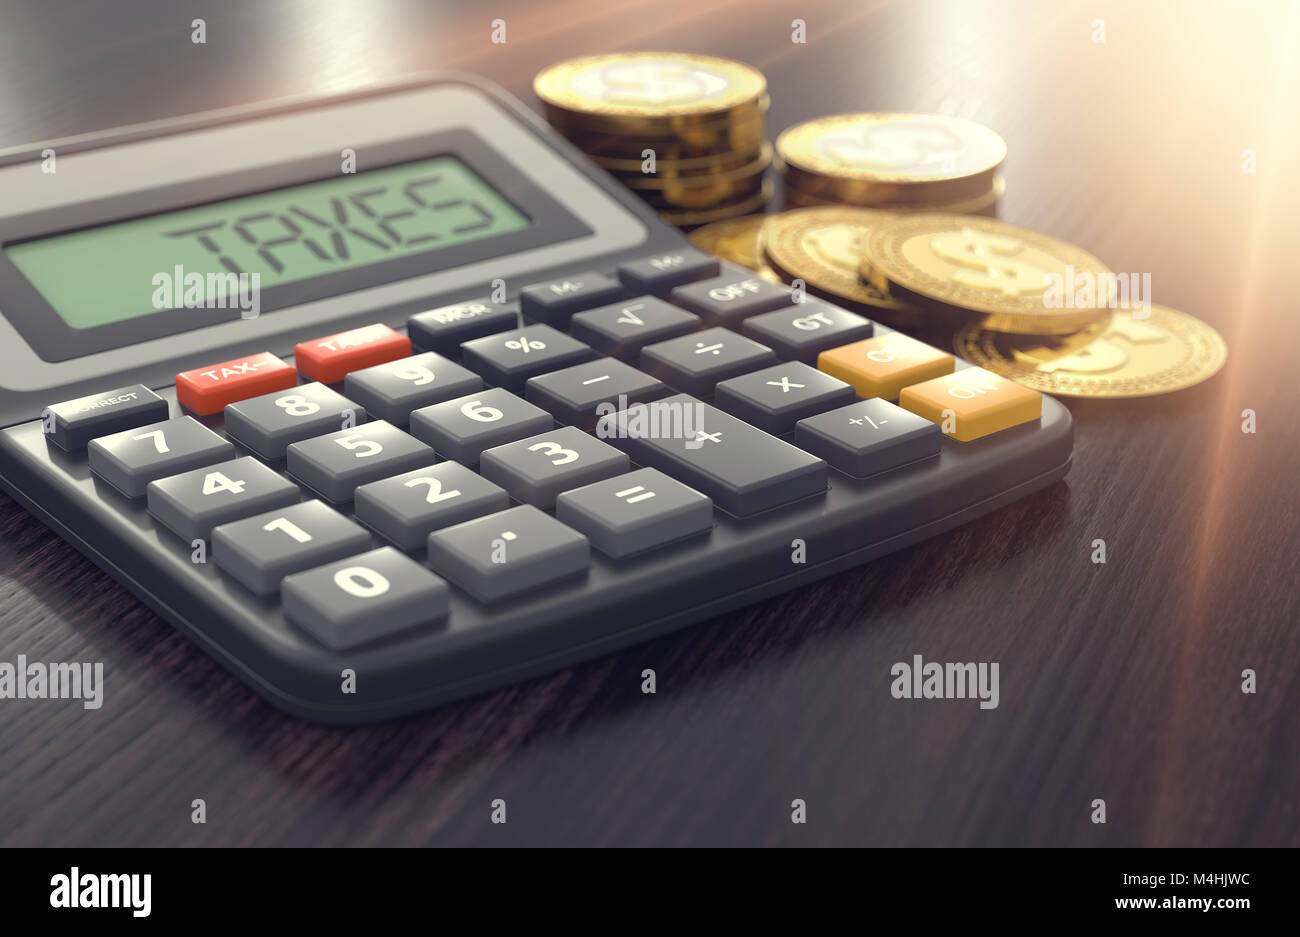 Calculator with the word TAXES on the display and golden coins and sun flare in the background. Income Tax concept. Stock Photo